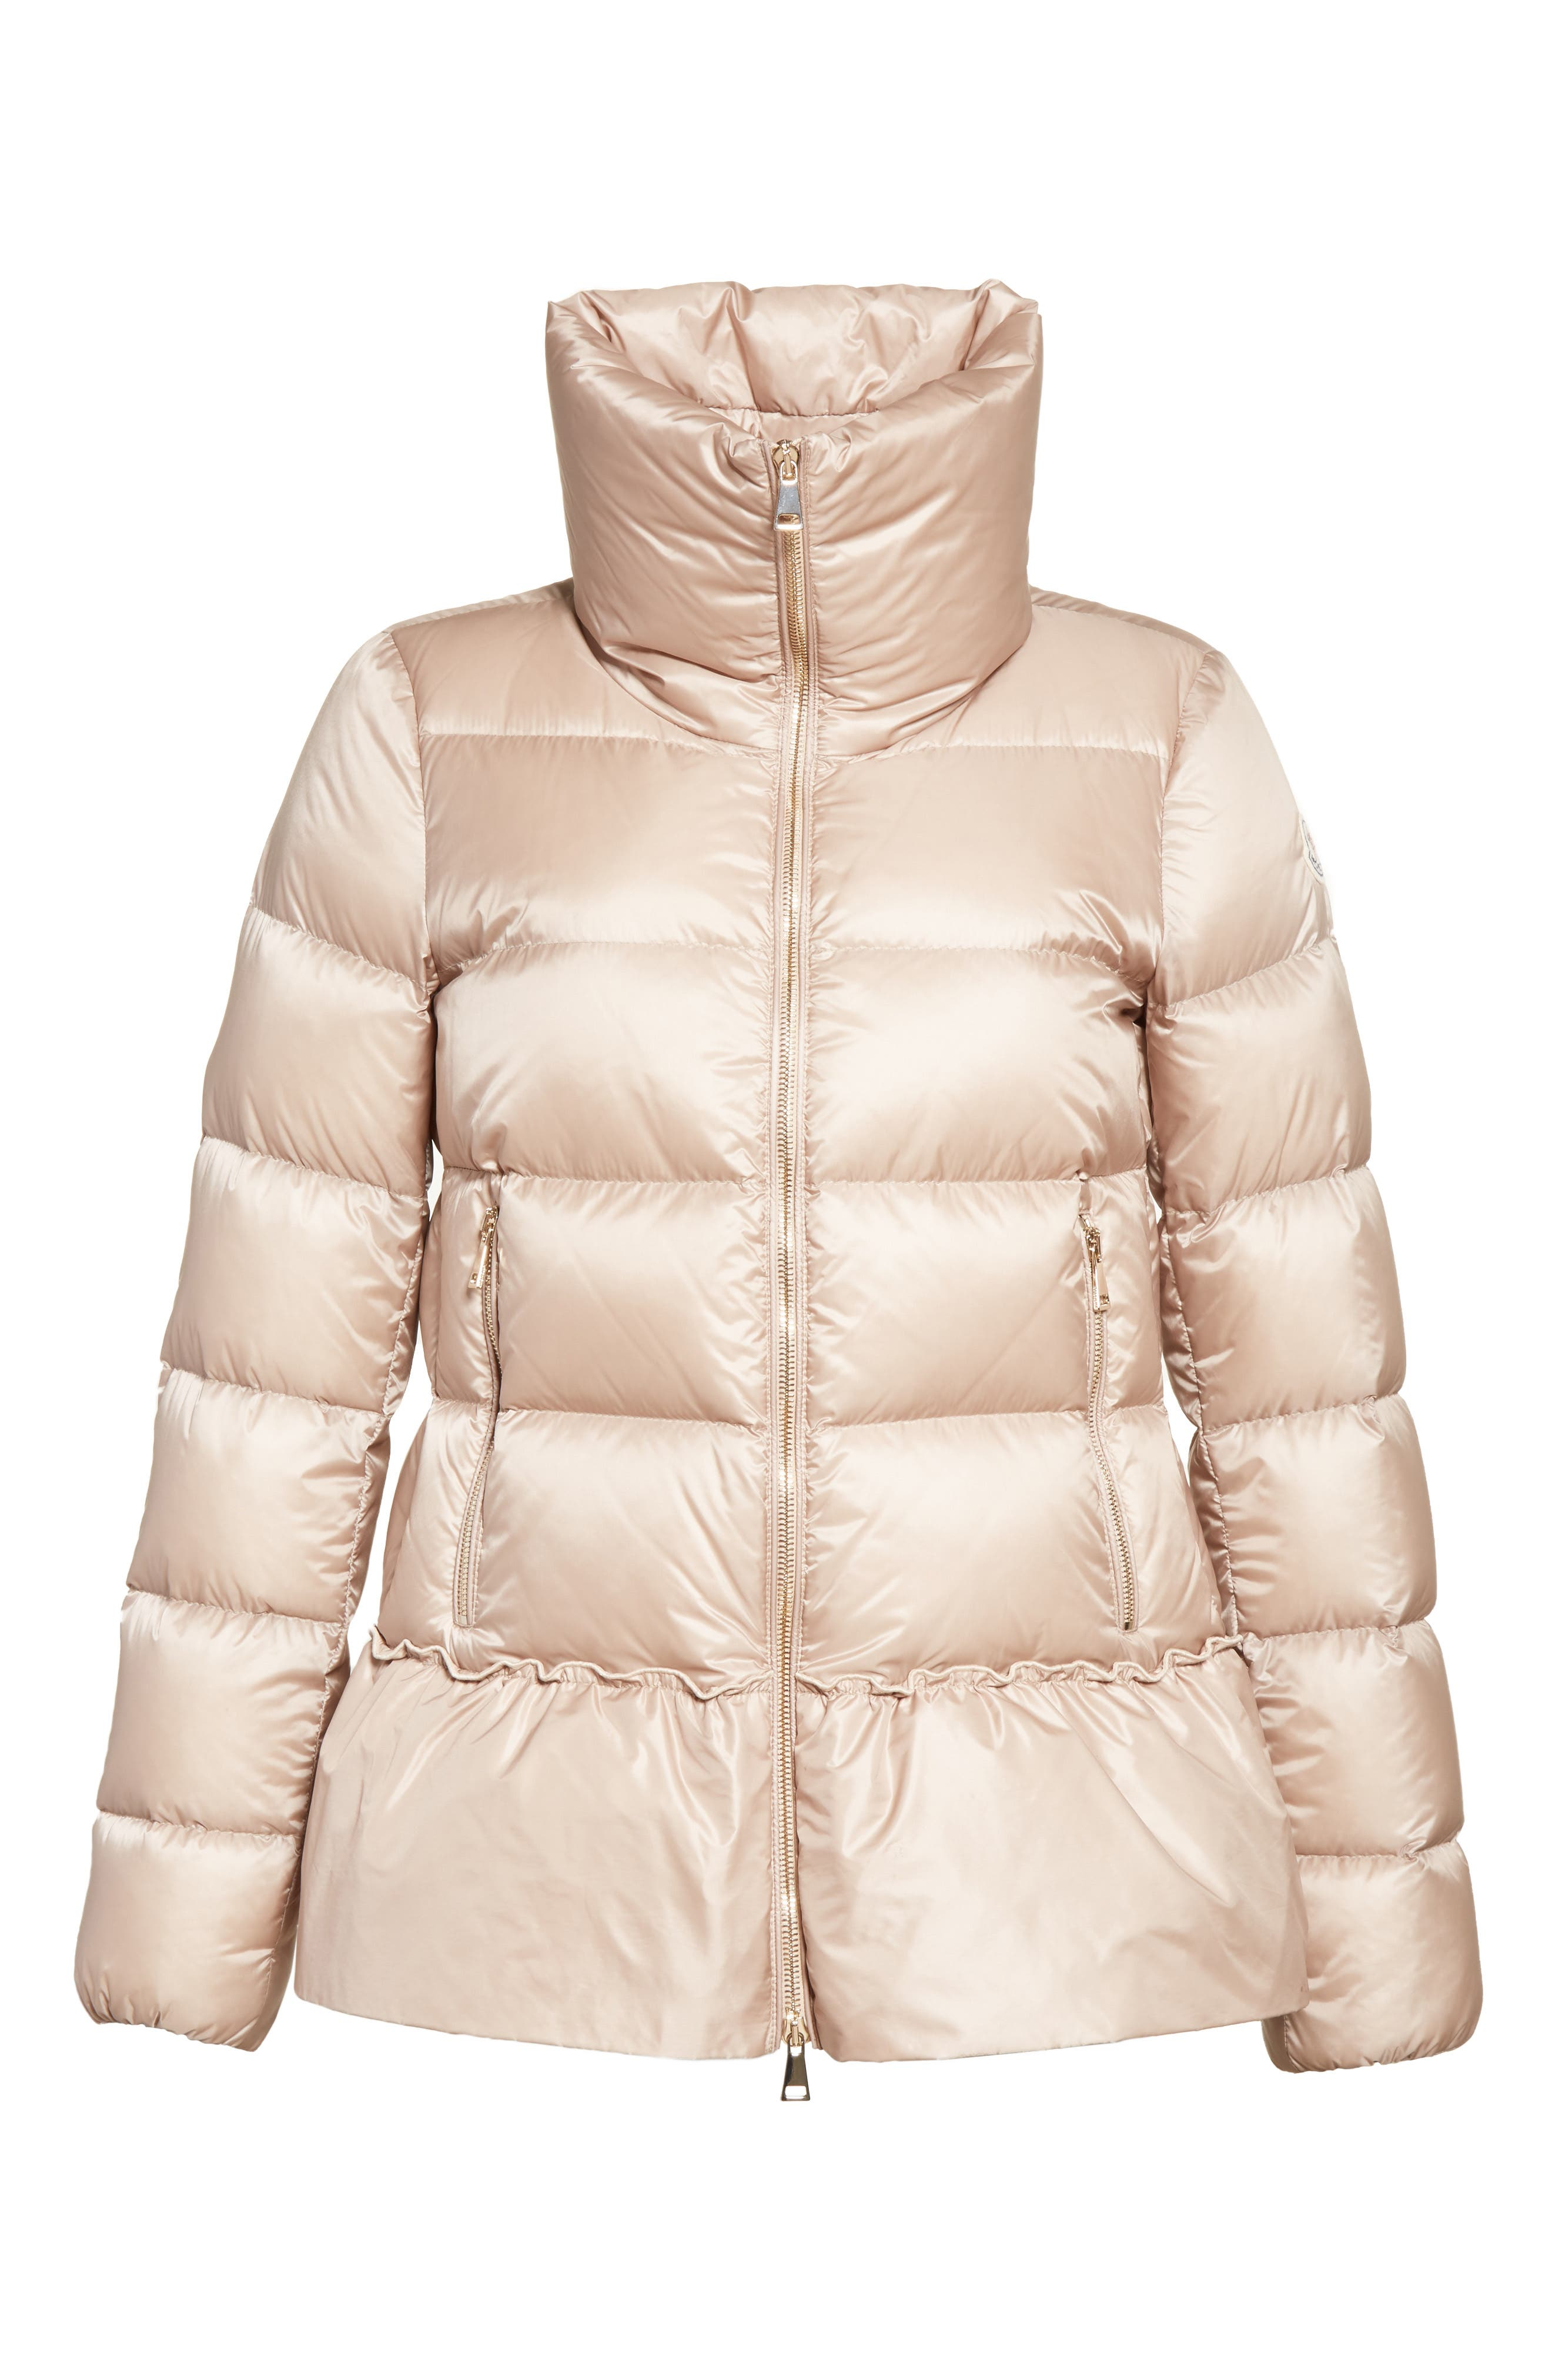 Anet Peplum Down Puffer Jacket,                             Alternate thumbnail 2, color,                             NATURAL